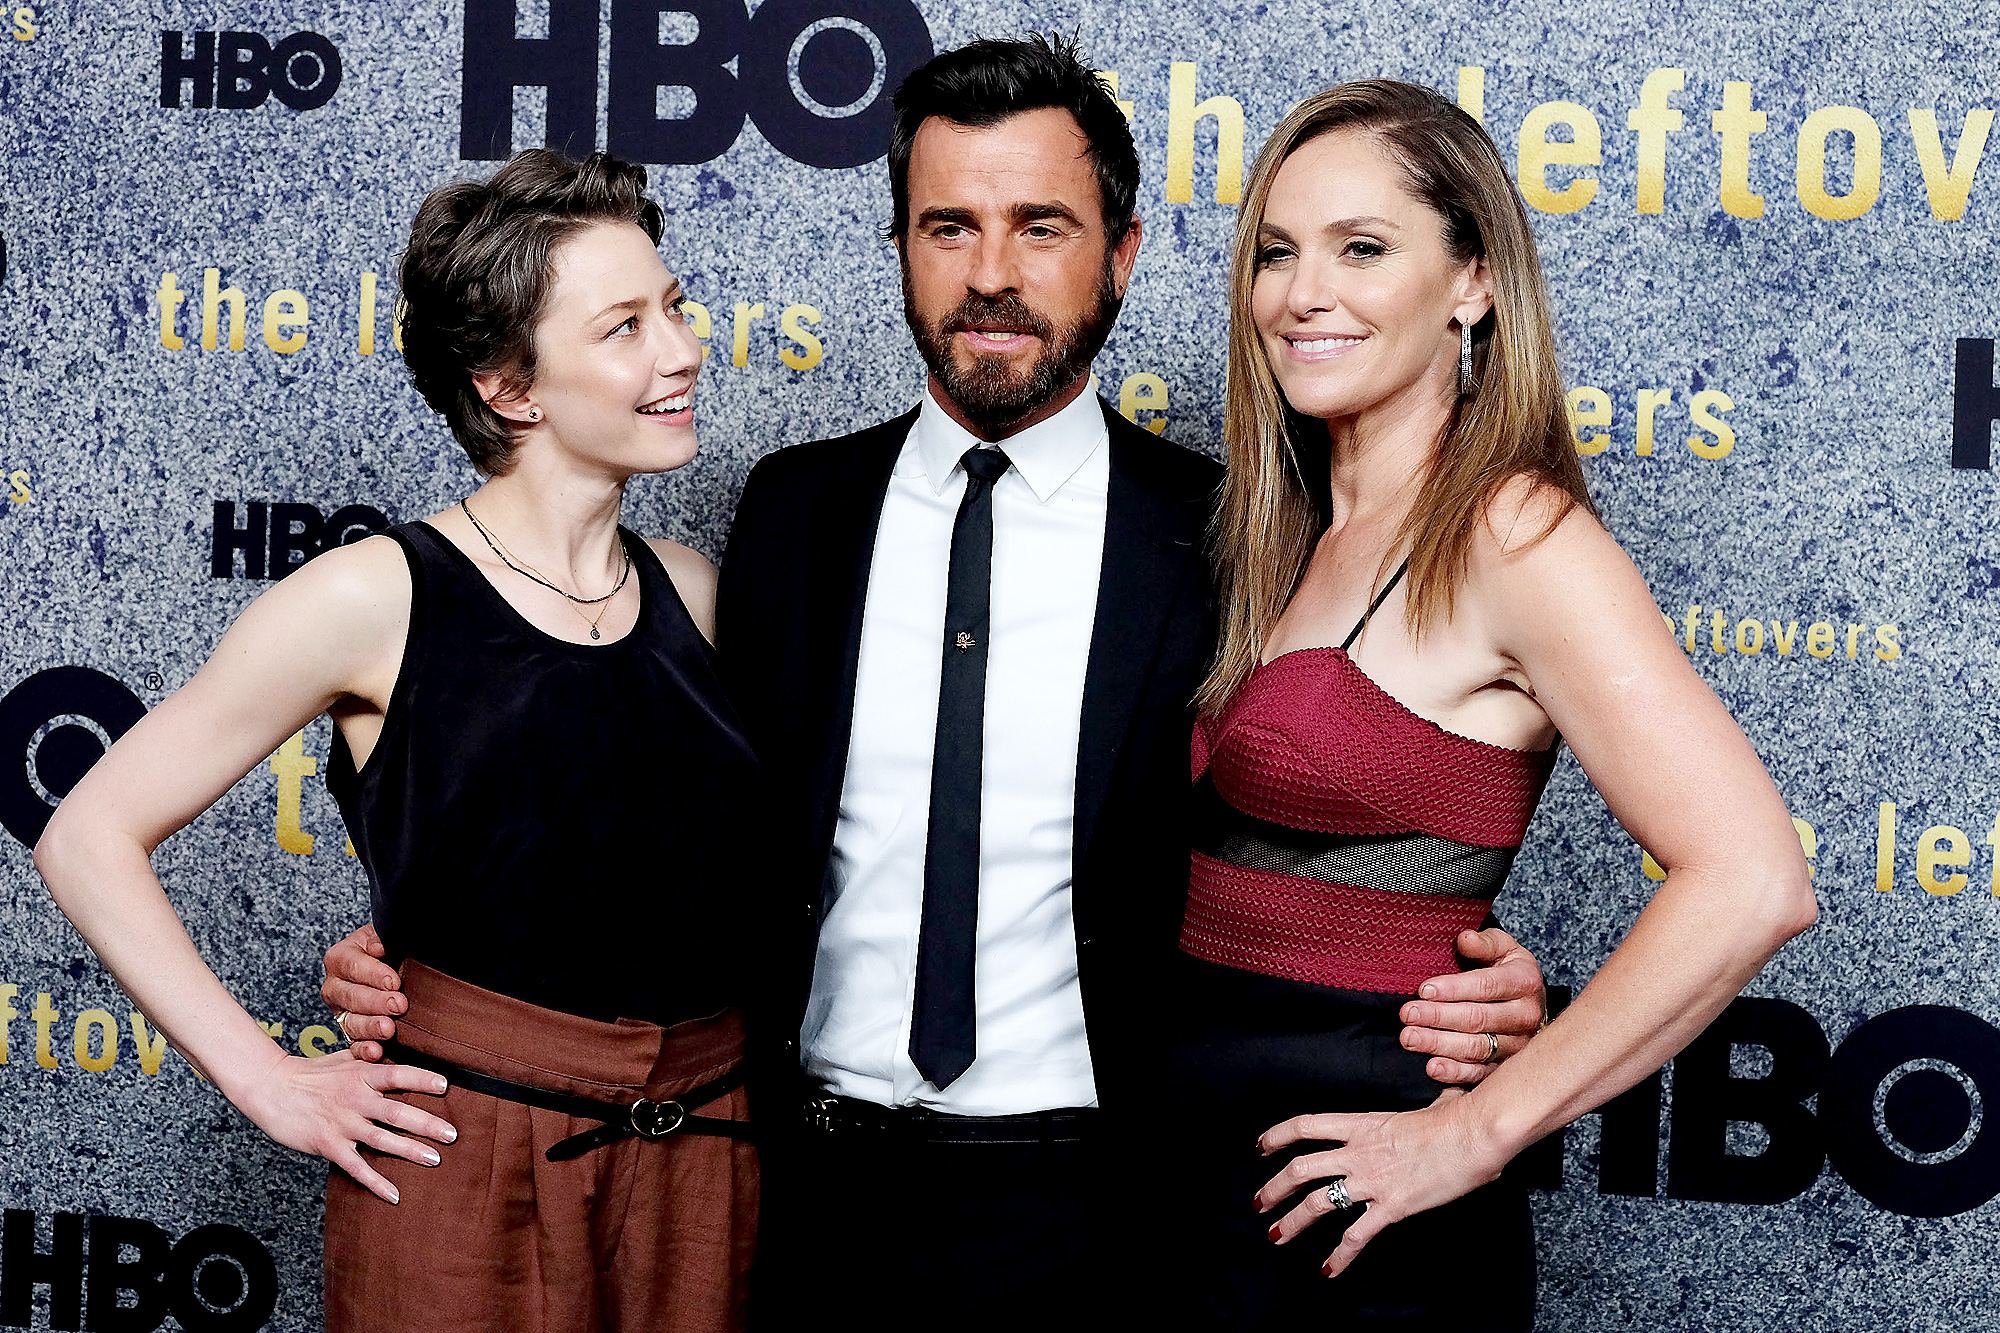 Special Finale Screening and Q&A with the Cast of HBO's 'The Leftovers', New York, USA - 01 Jun 2017